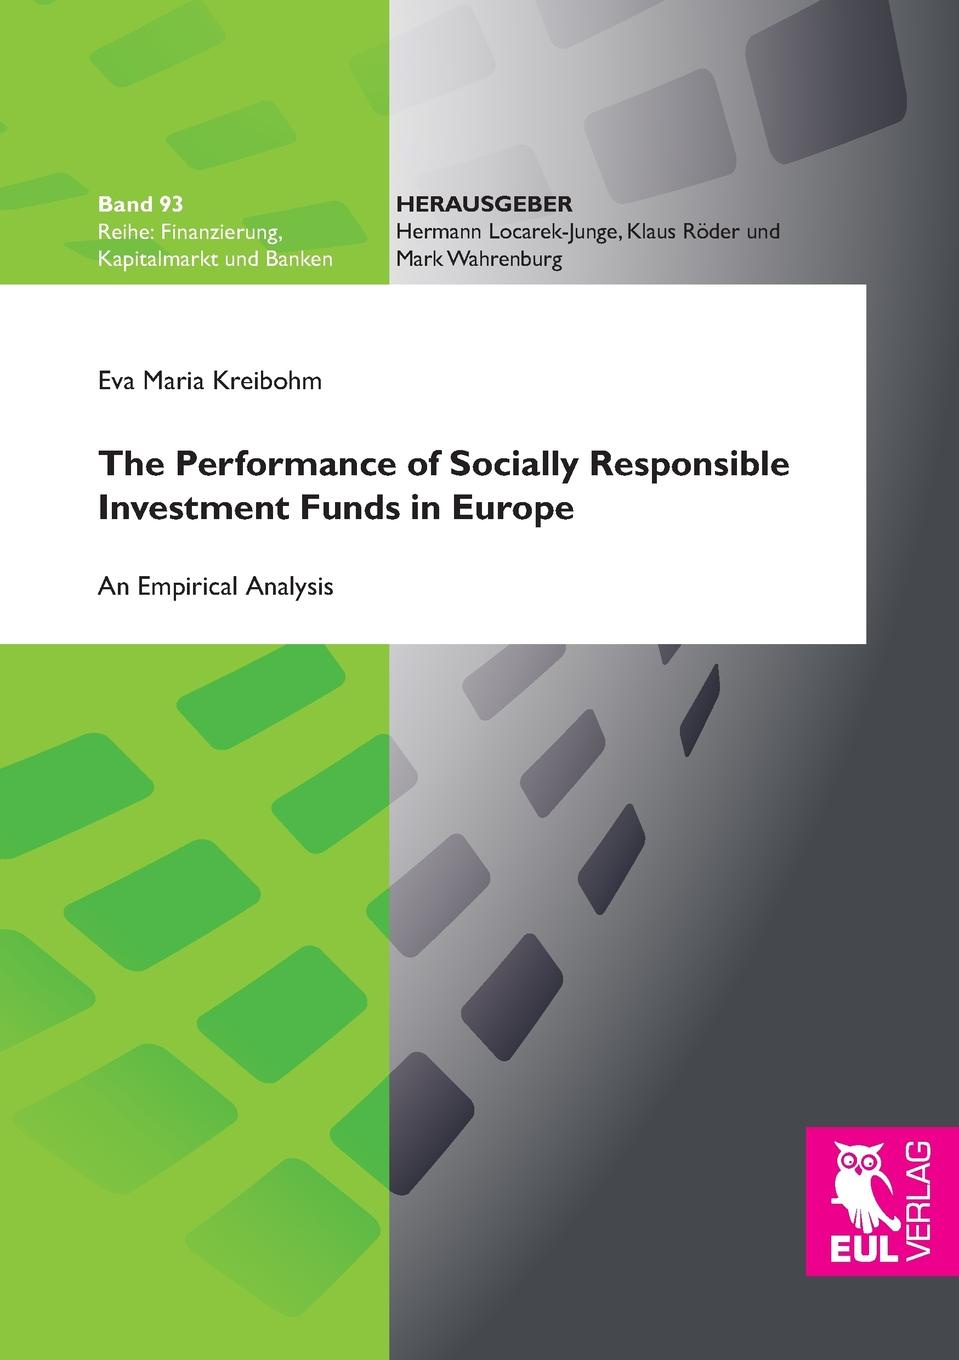 Eva Maria Kreibohm The Performance of Socially Responsible Investment Funds in Europe ian pollard investing in your life your biggest investment opportunities are not necessarily financial